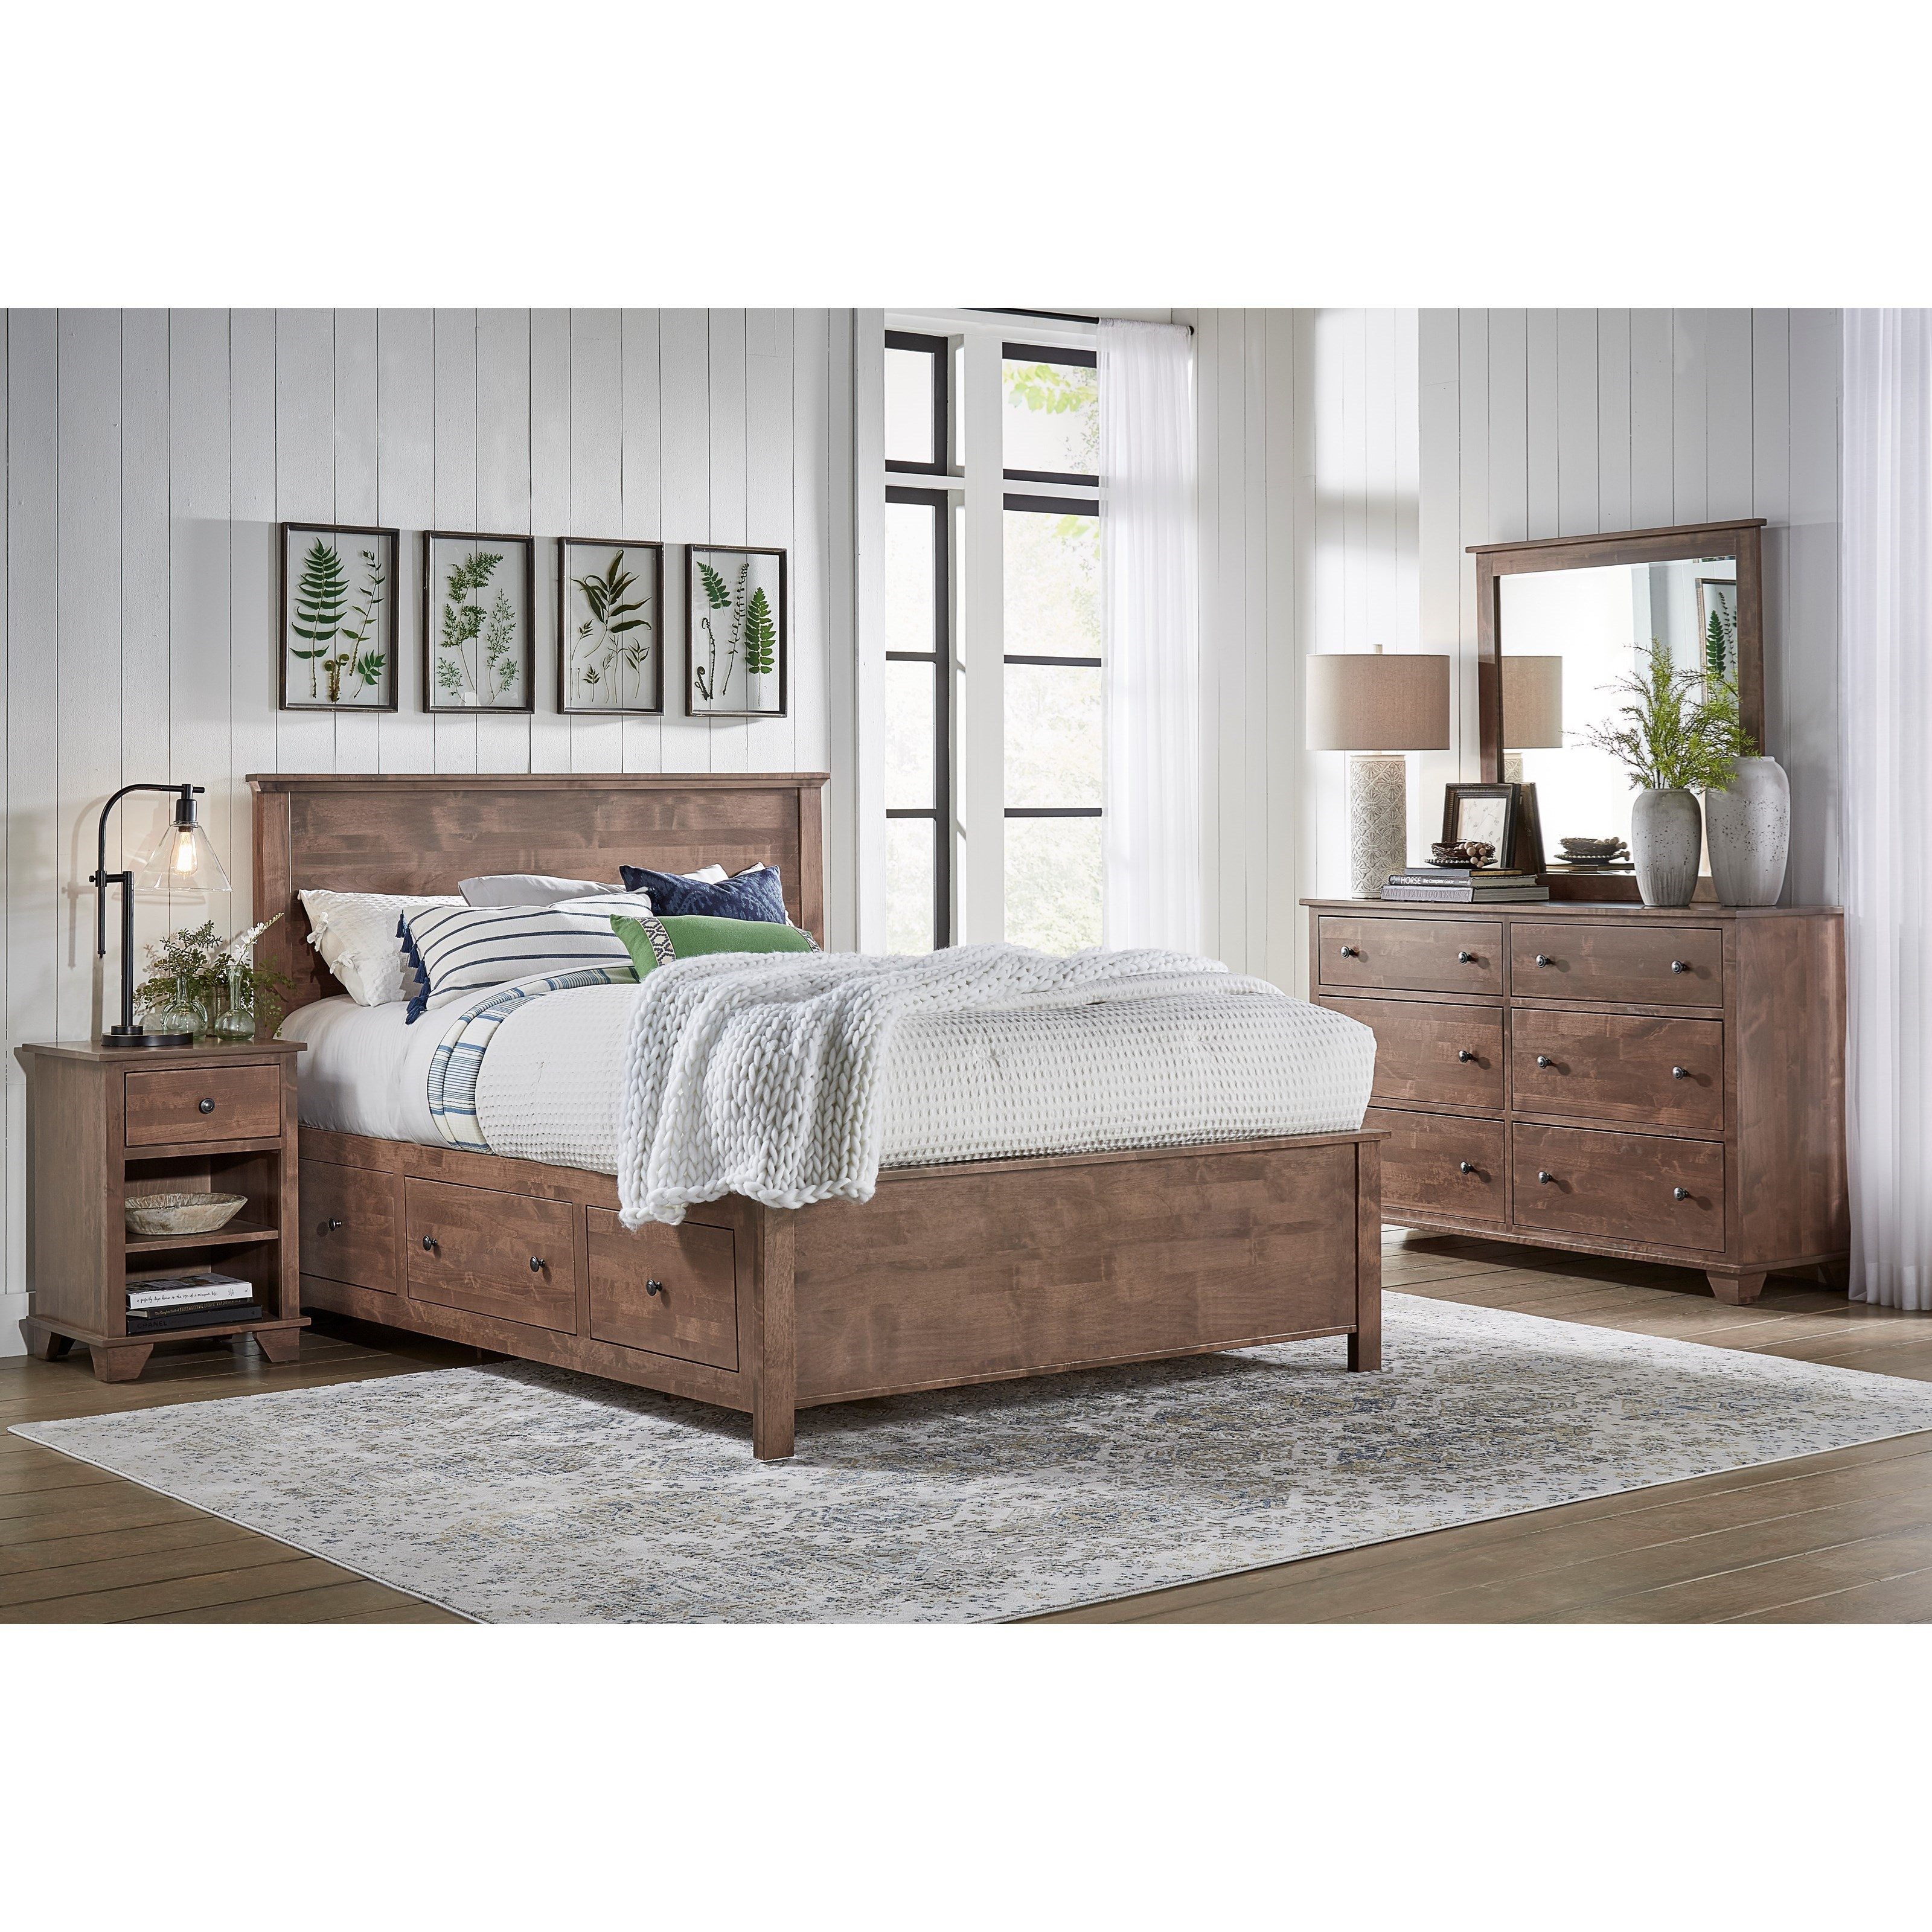 Heritage Elevated Storage Bed Bedroom Group by Archbold Furniture at Mueller Furniture